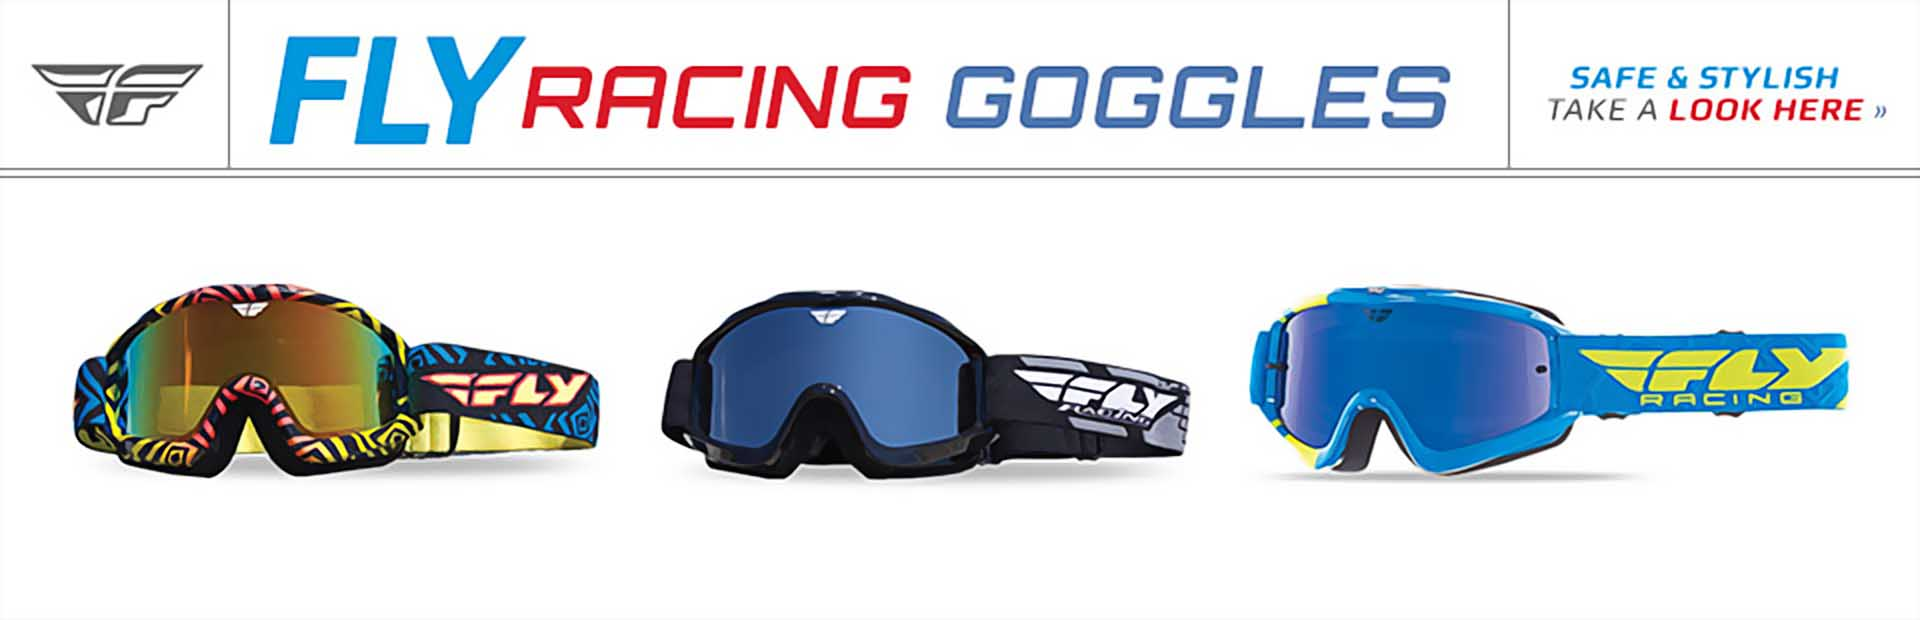 Fly Racing Goggles: Click here to shop online.